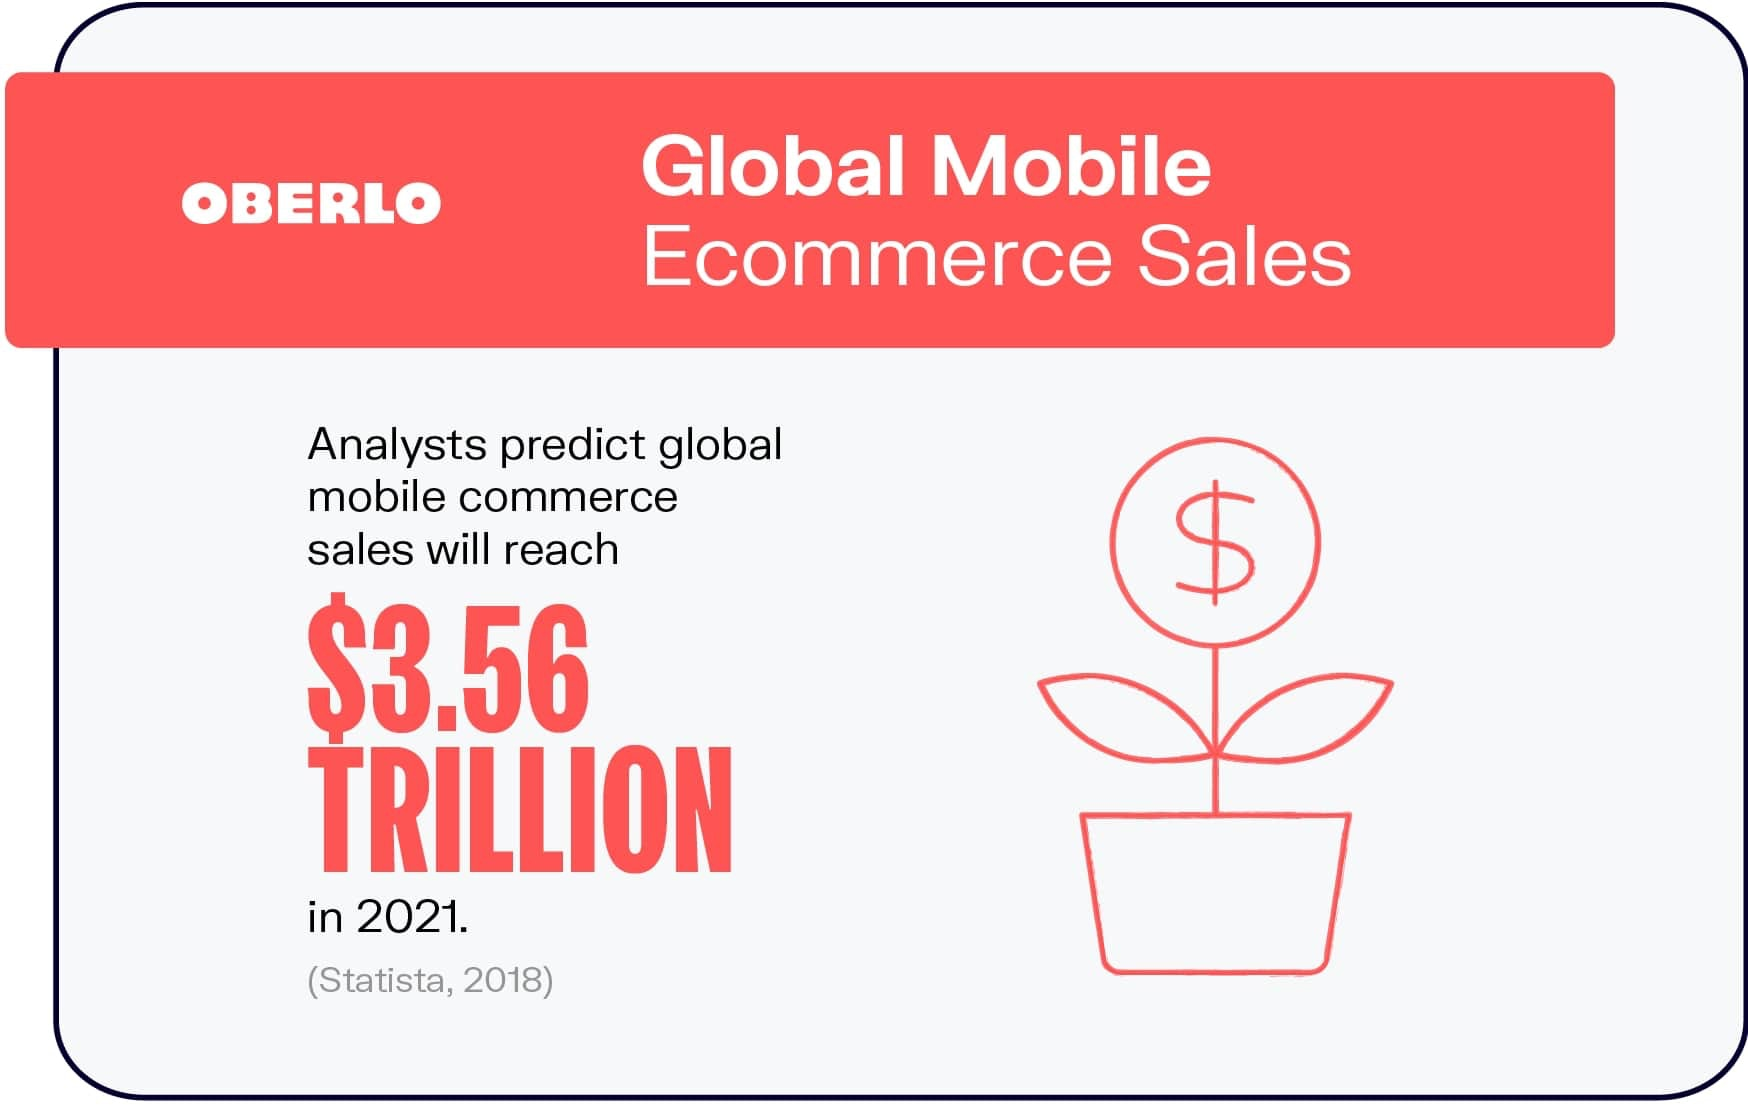 Global Mobile Ecommerce Sales